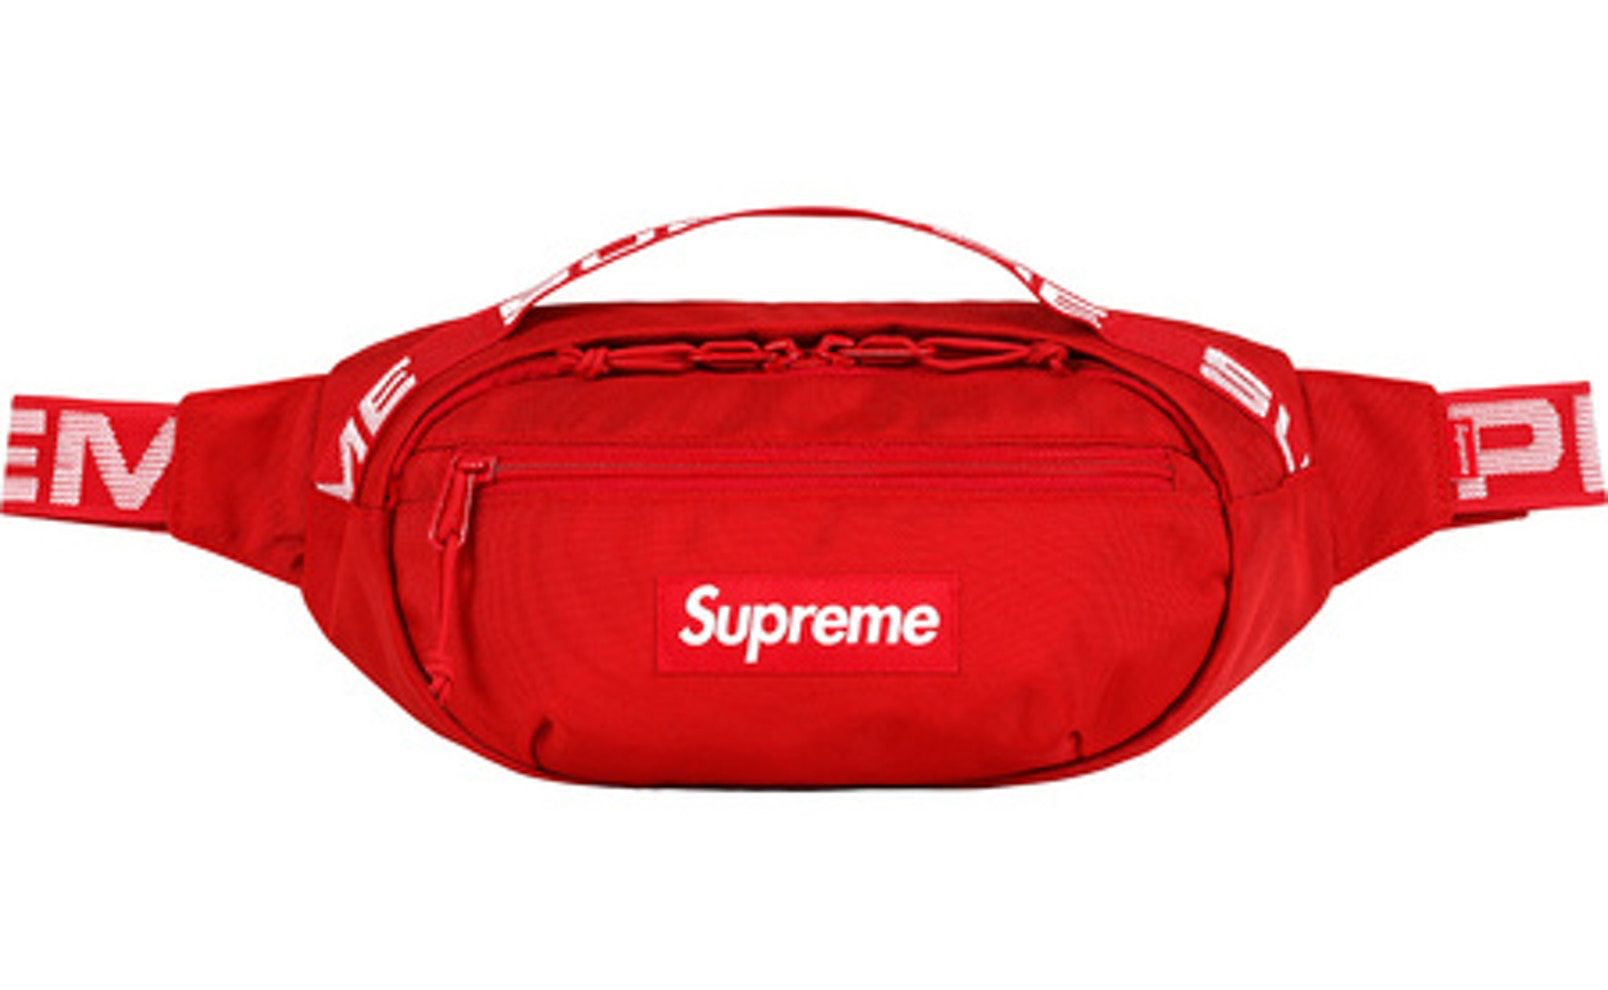 42cc5c8c Check out the Supreme Waist Bag (SS18) Red available on StockX ...